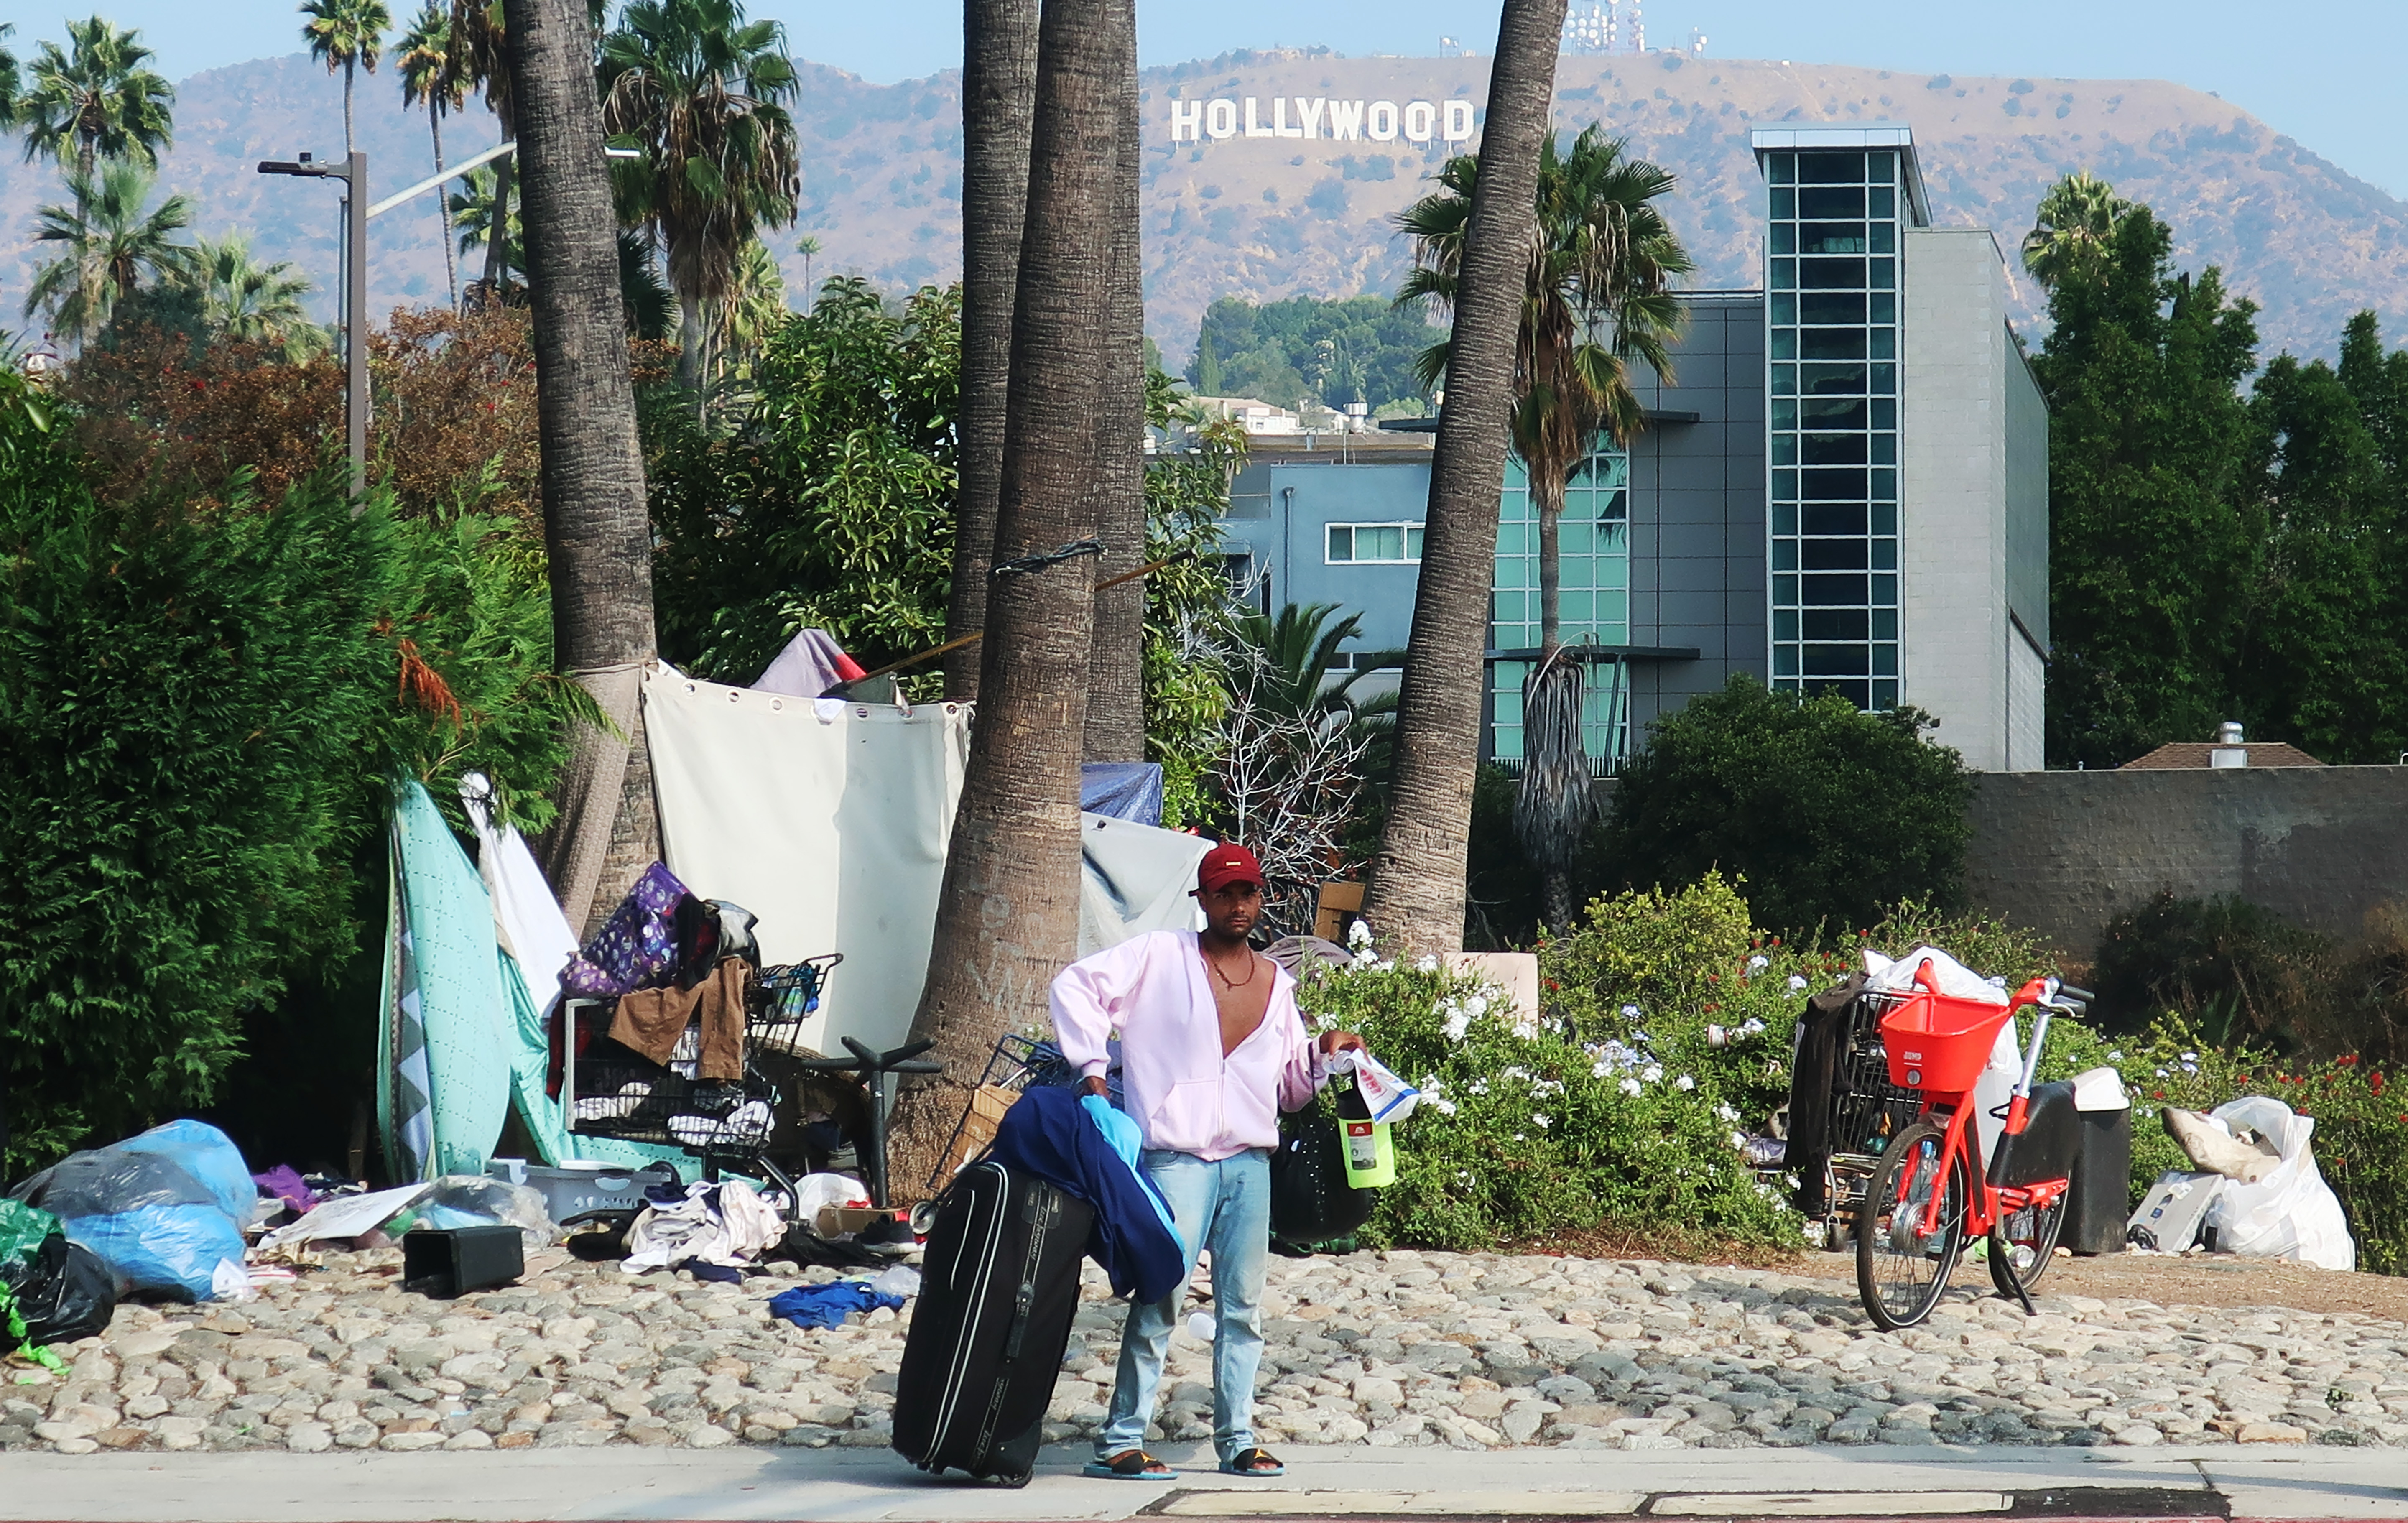 A slender man in a partially unbuttoned pink shirt, blue jeans, and a red baseball cap stands with a black rolling suitcase in front of tents, tarps, and shopping carts. Buildings, palm trees, hills, and the Hollywood Sign in the background.